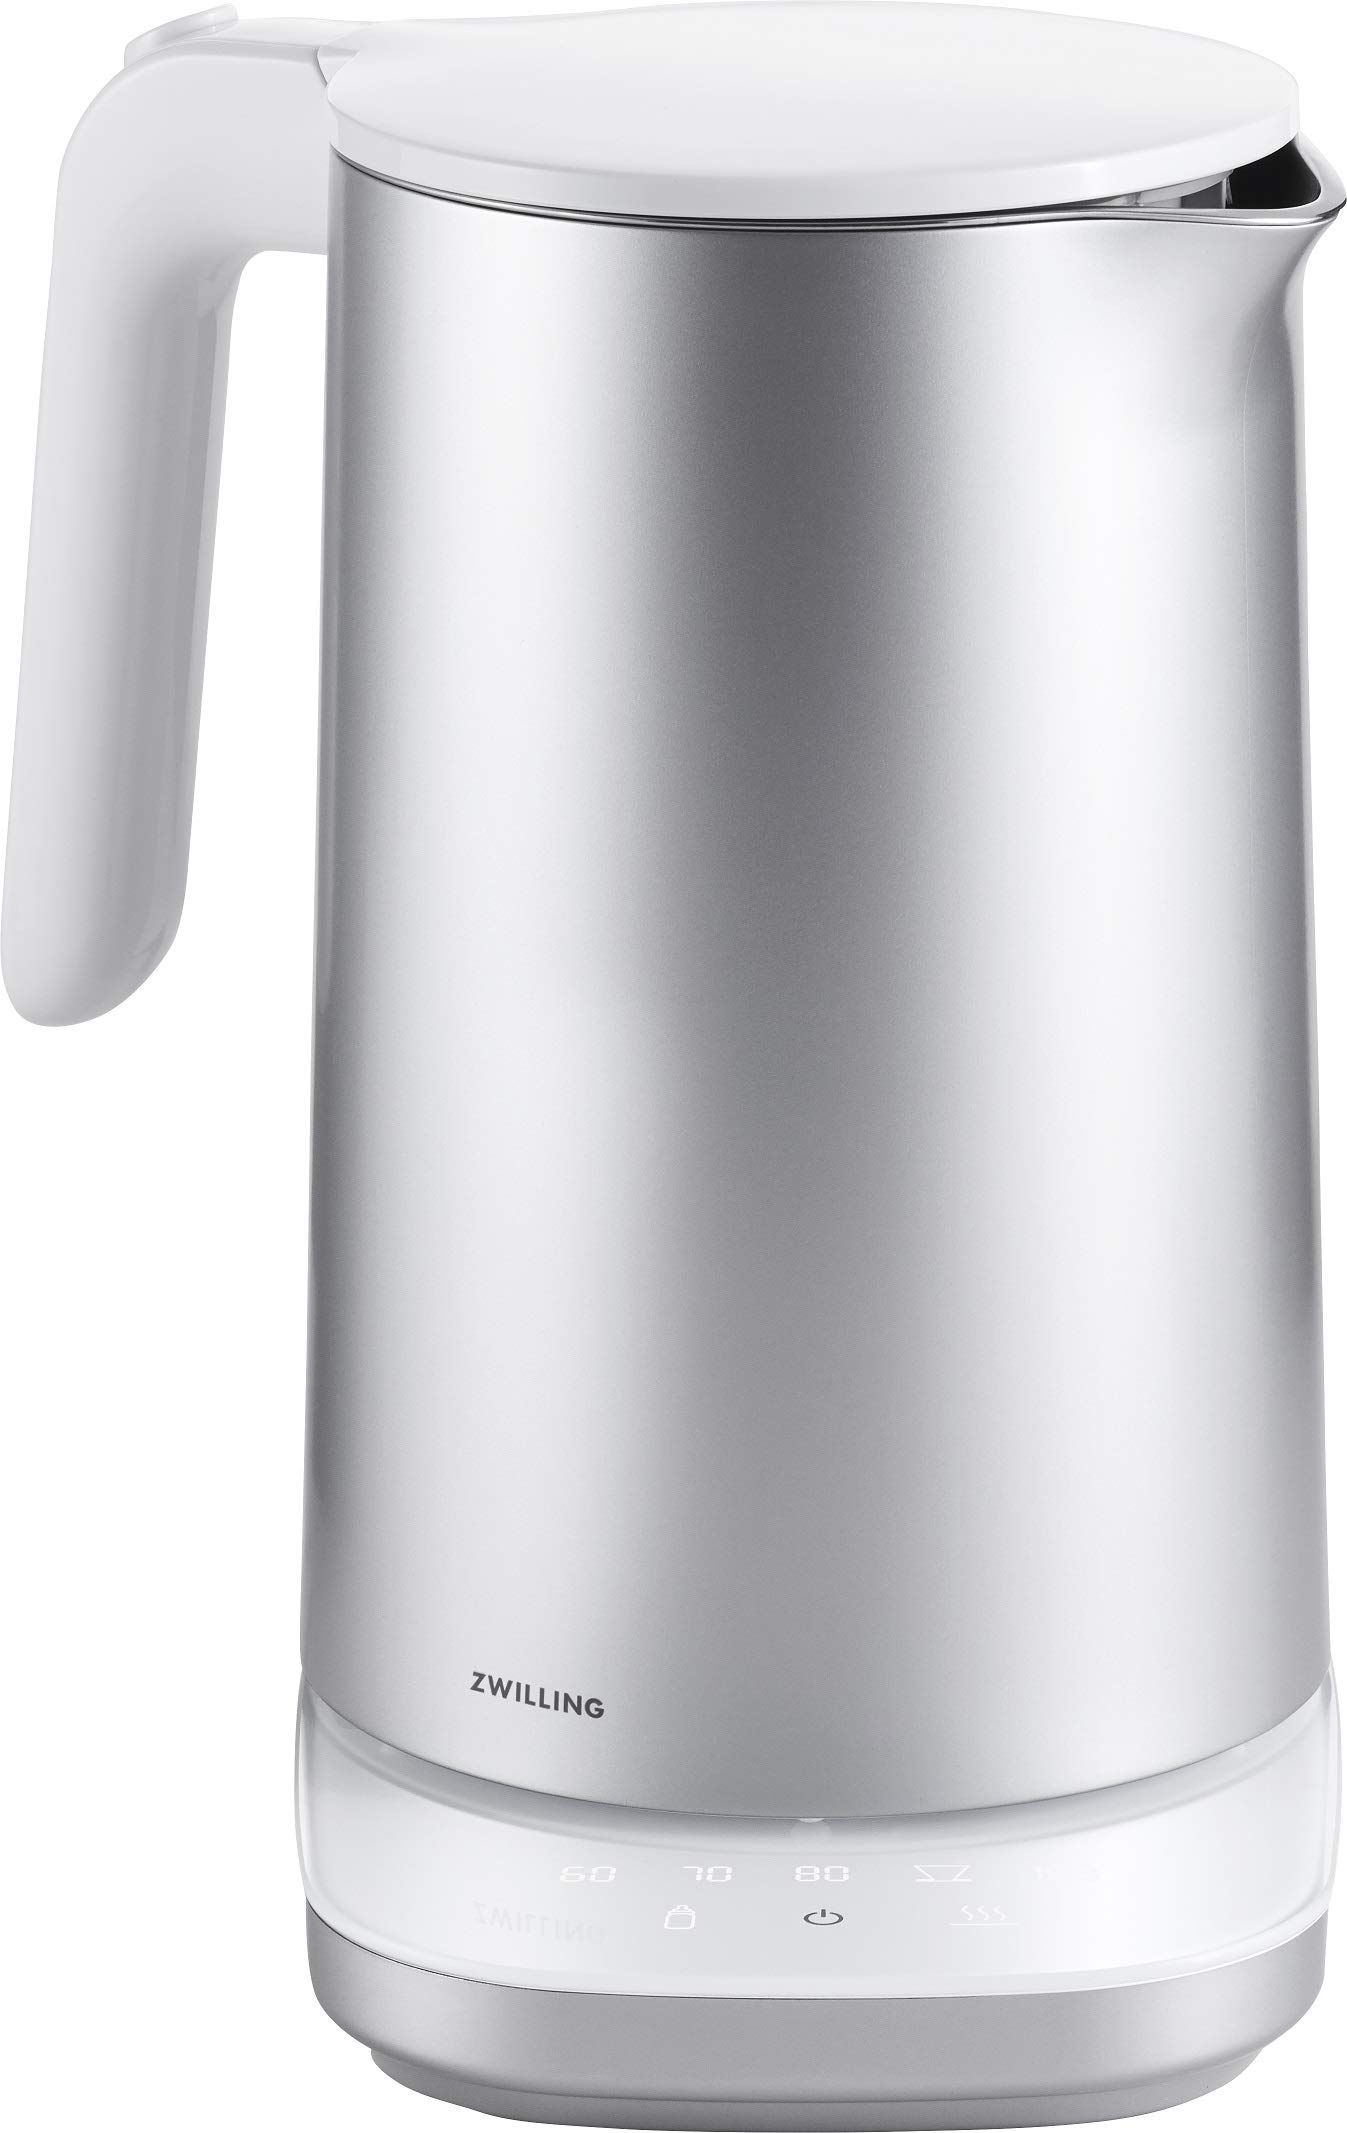 ZWILLING Hervidor eléctrico pro | ZWILLING ENFINIGY